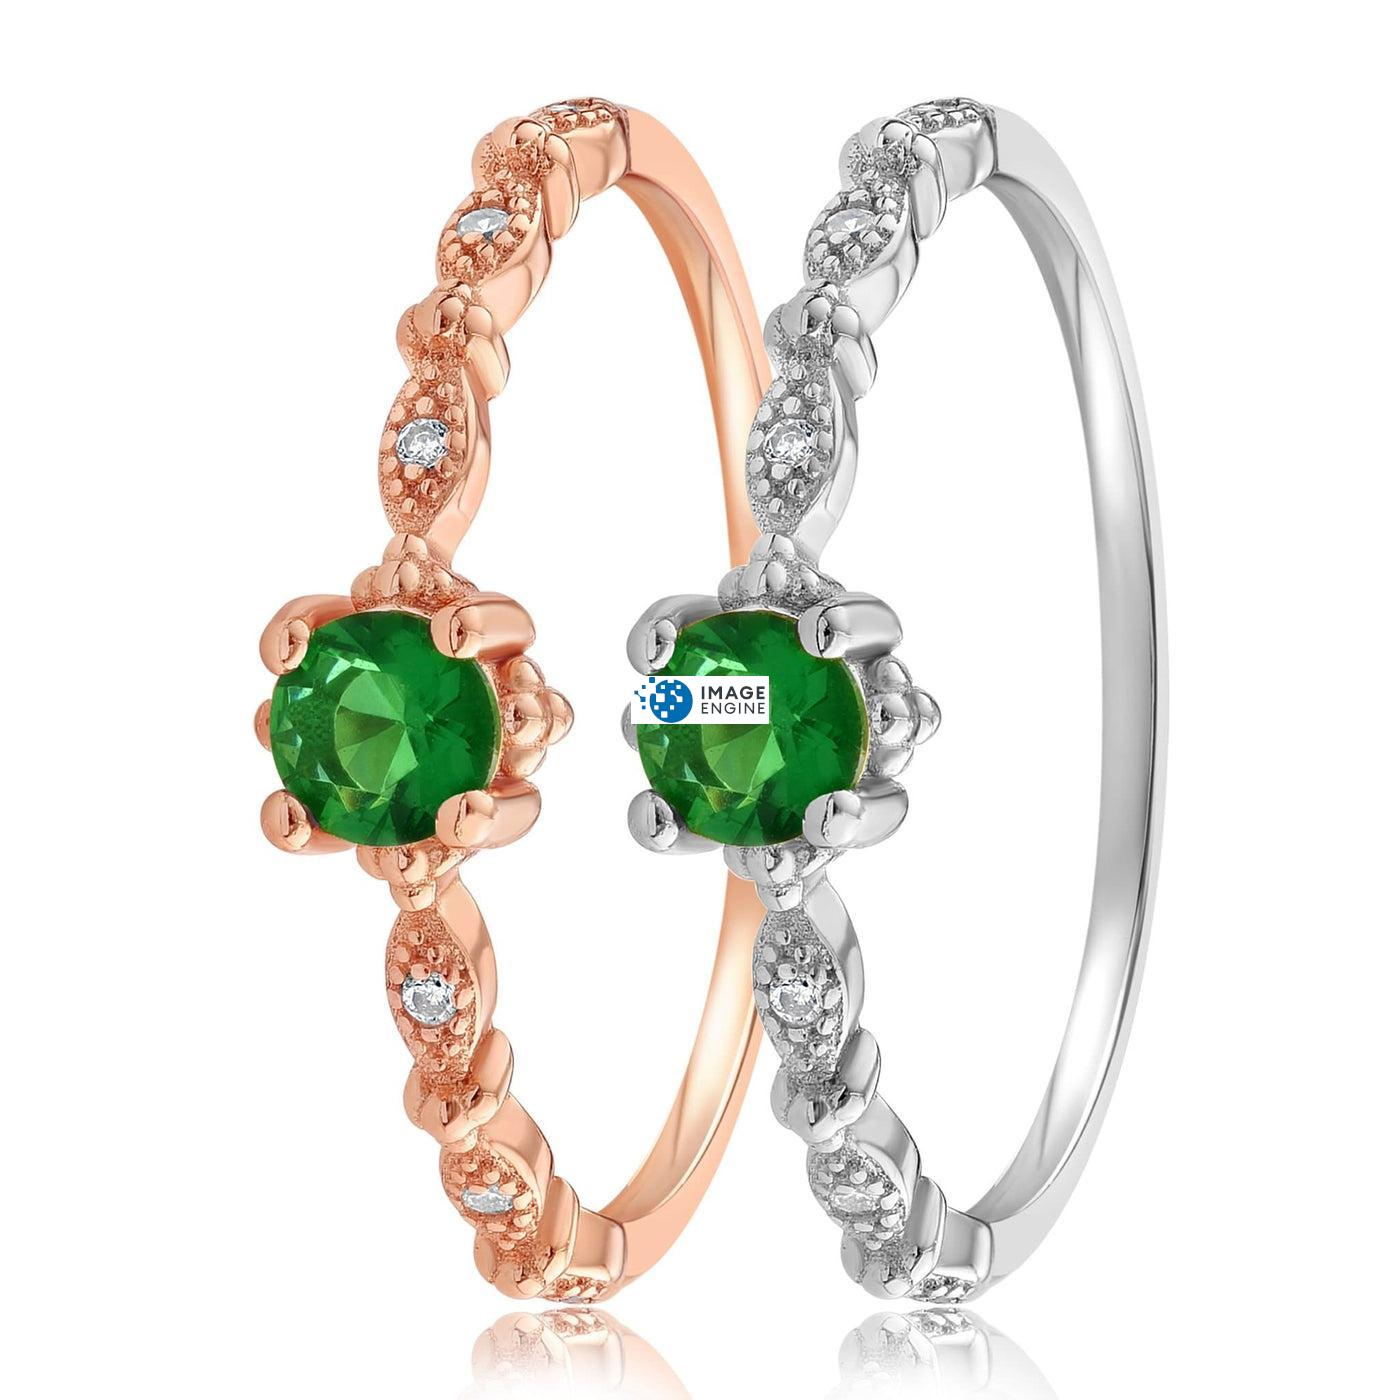 Garen Ring Green Gemstone - Side by Side - 925 Sterling Silver and 18K Rose Gold Vermeil